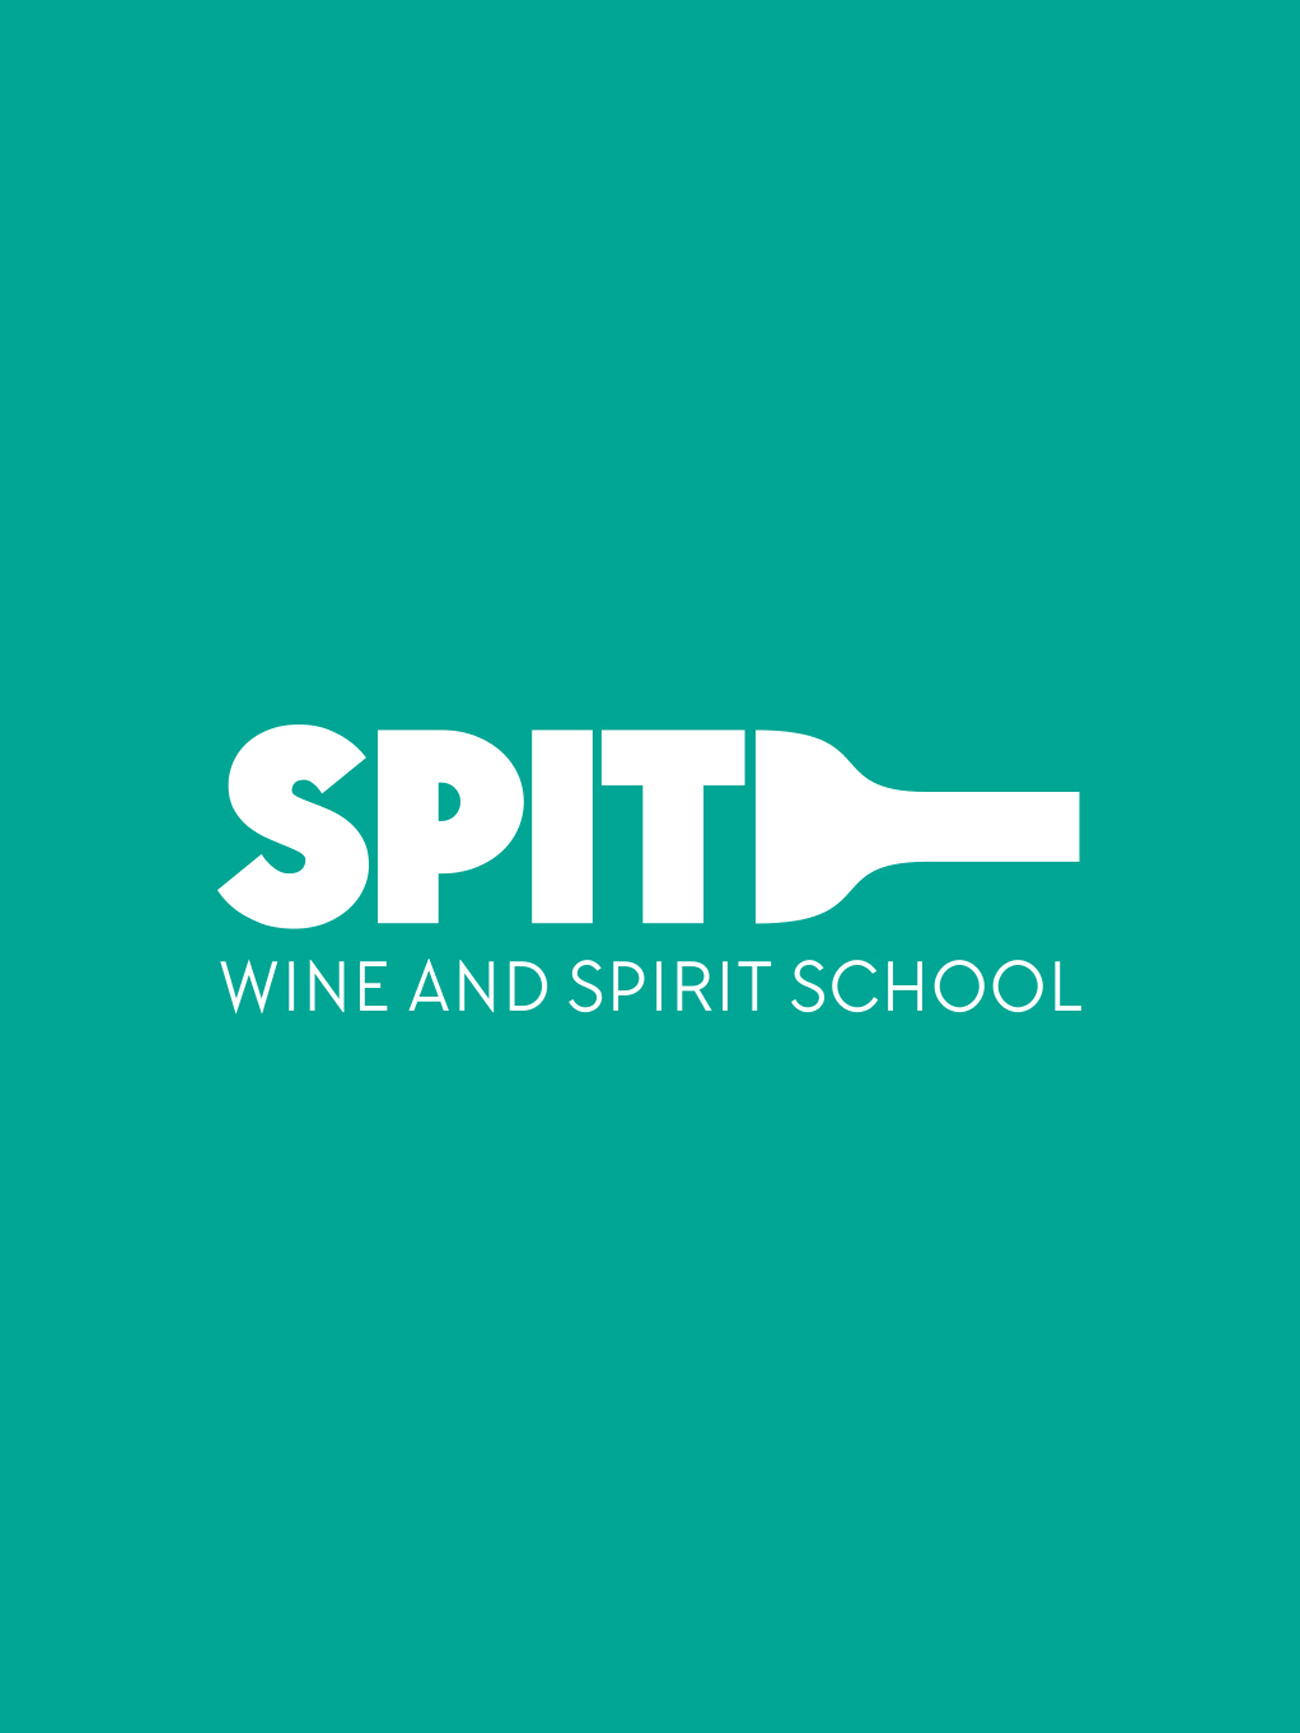 SPIT wine and spirit school